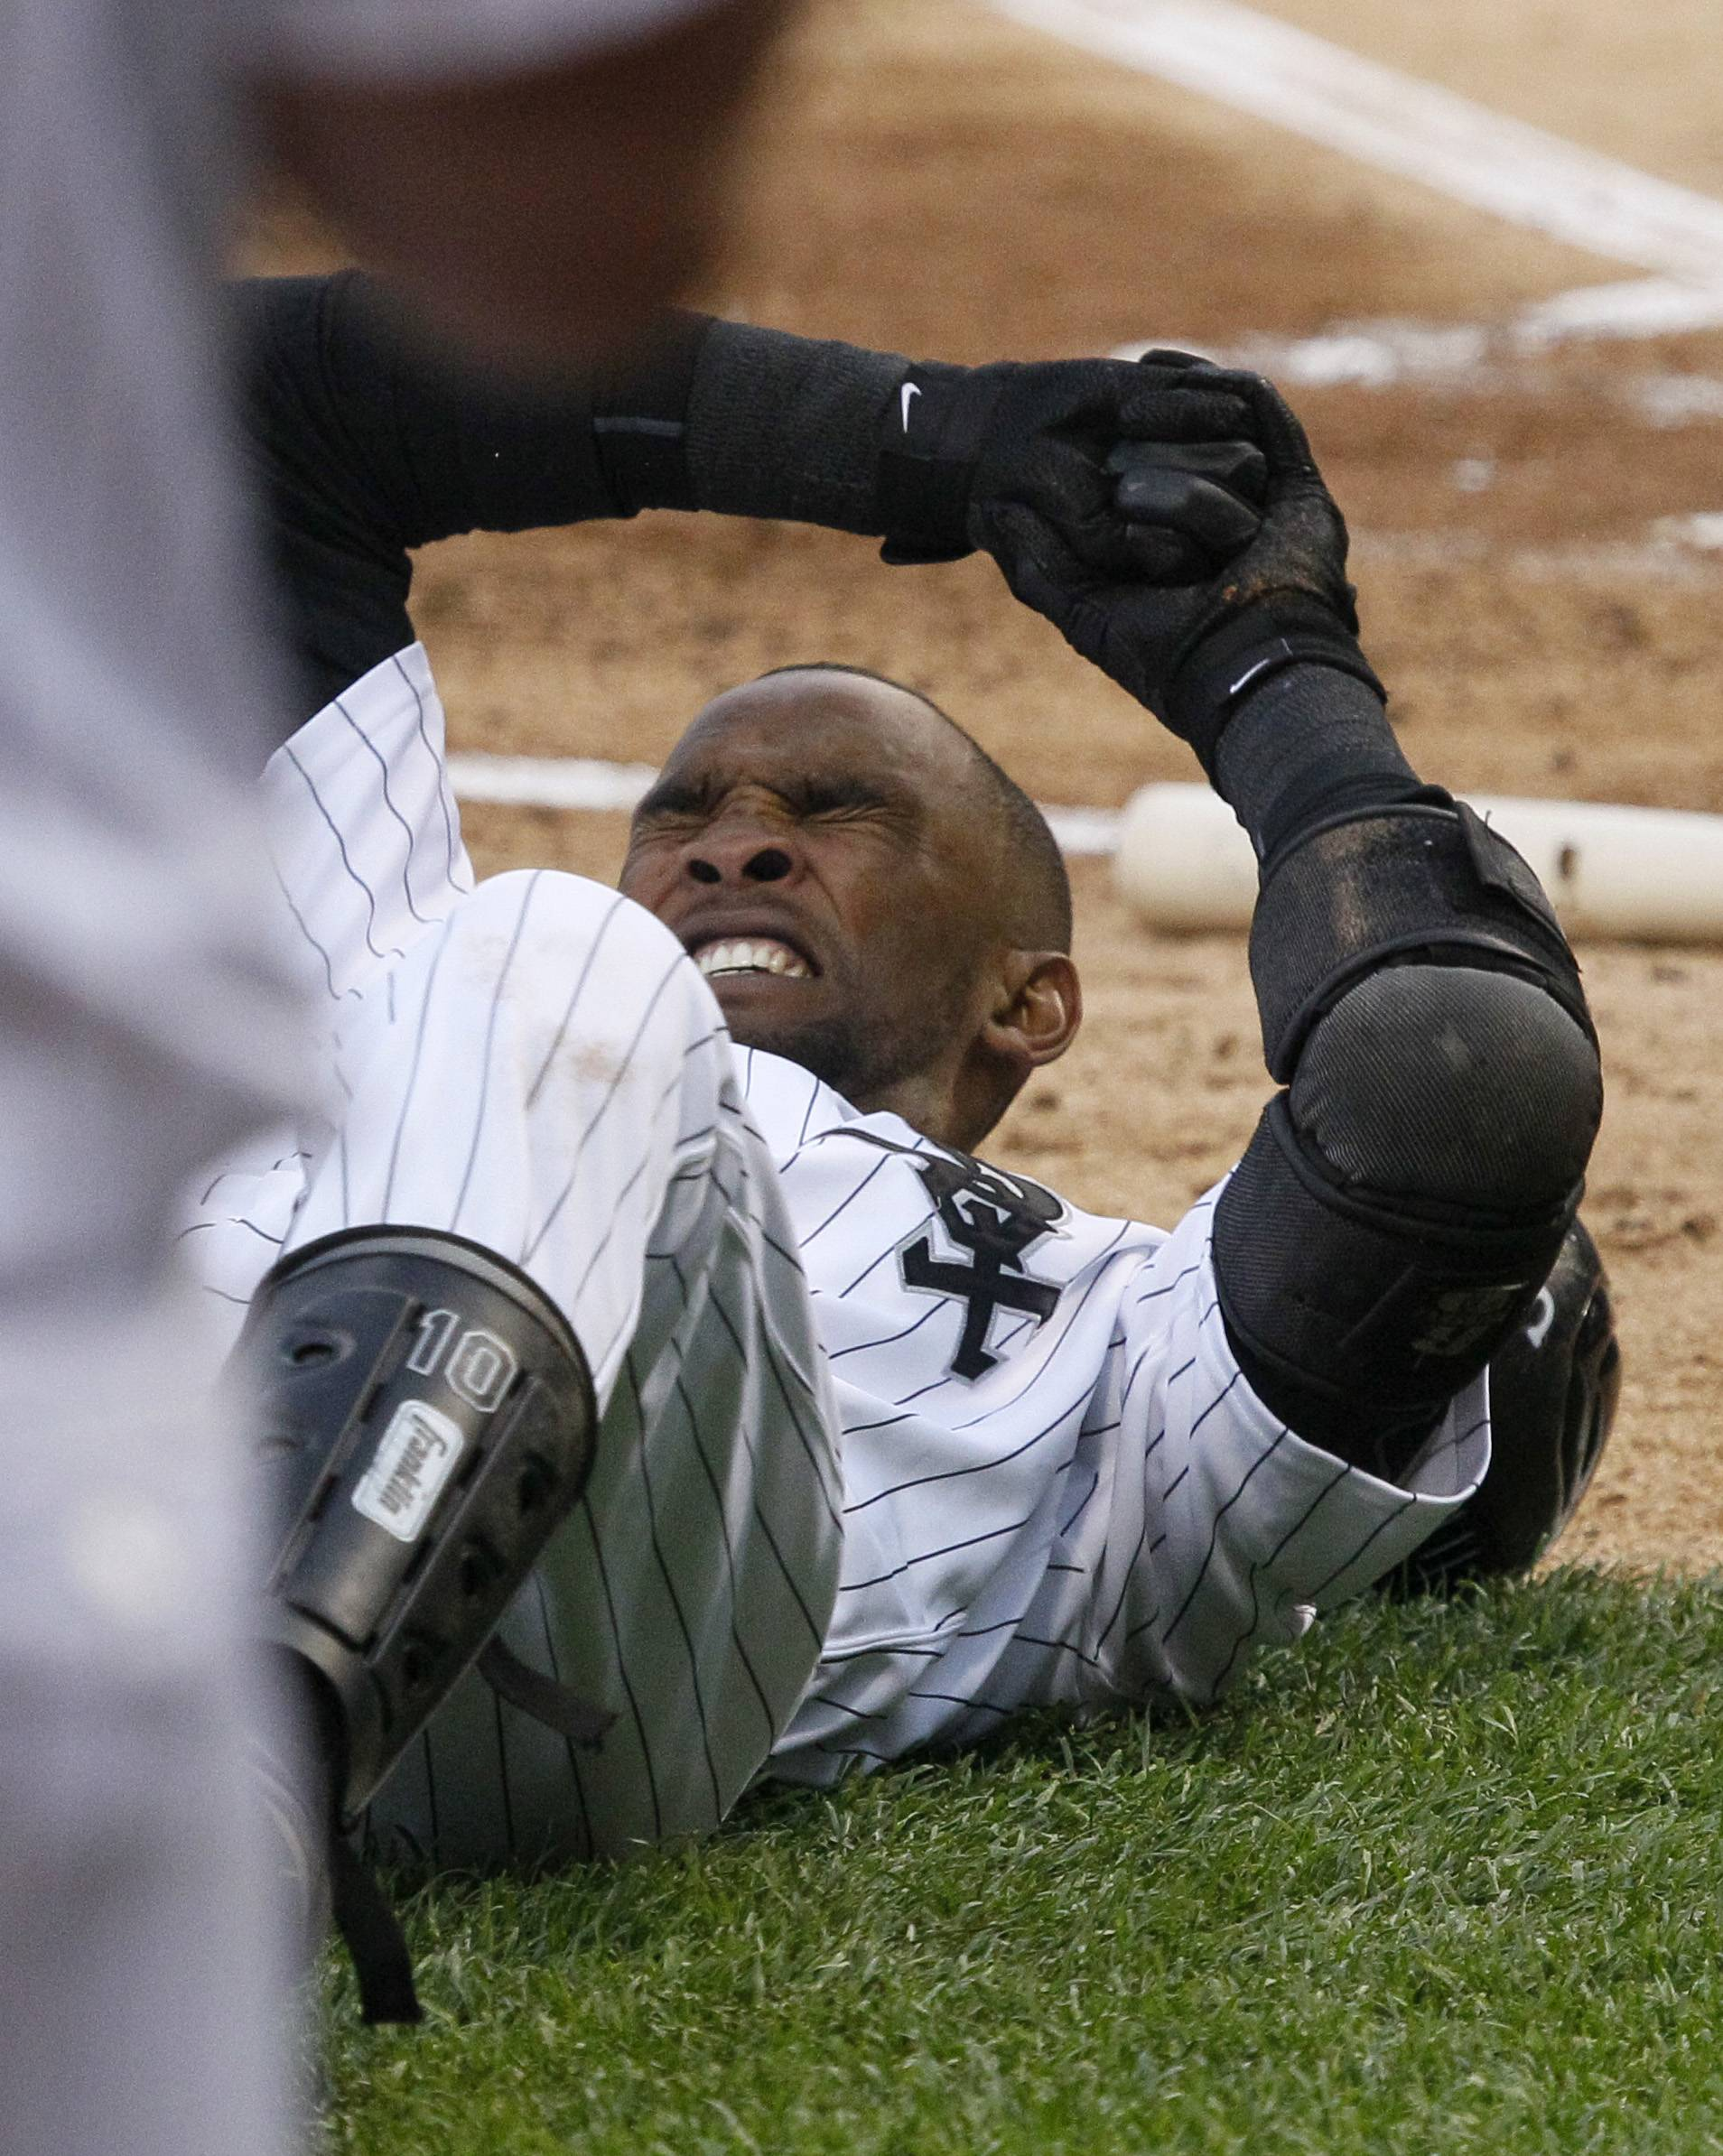 Alexei Ramirez rolls around on the ground after being hit by a pitch from Cleveland Indians starting pitcher Fausto Carmona during the first inning Thursday. Ramirez remained in the game, hitting a two-run double in the second inning.